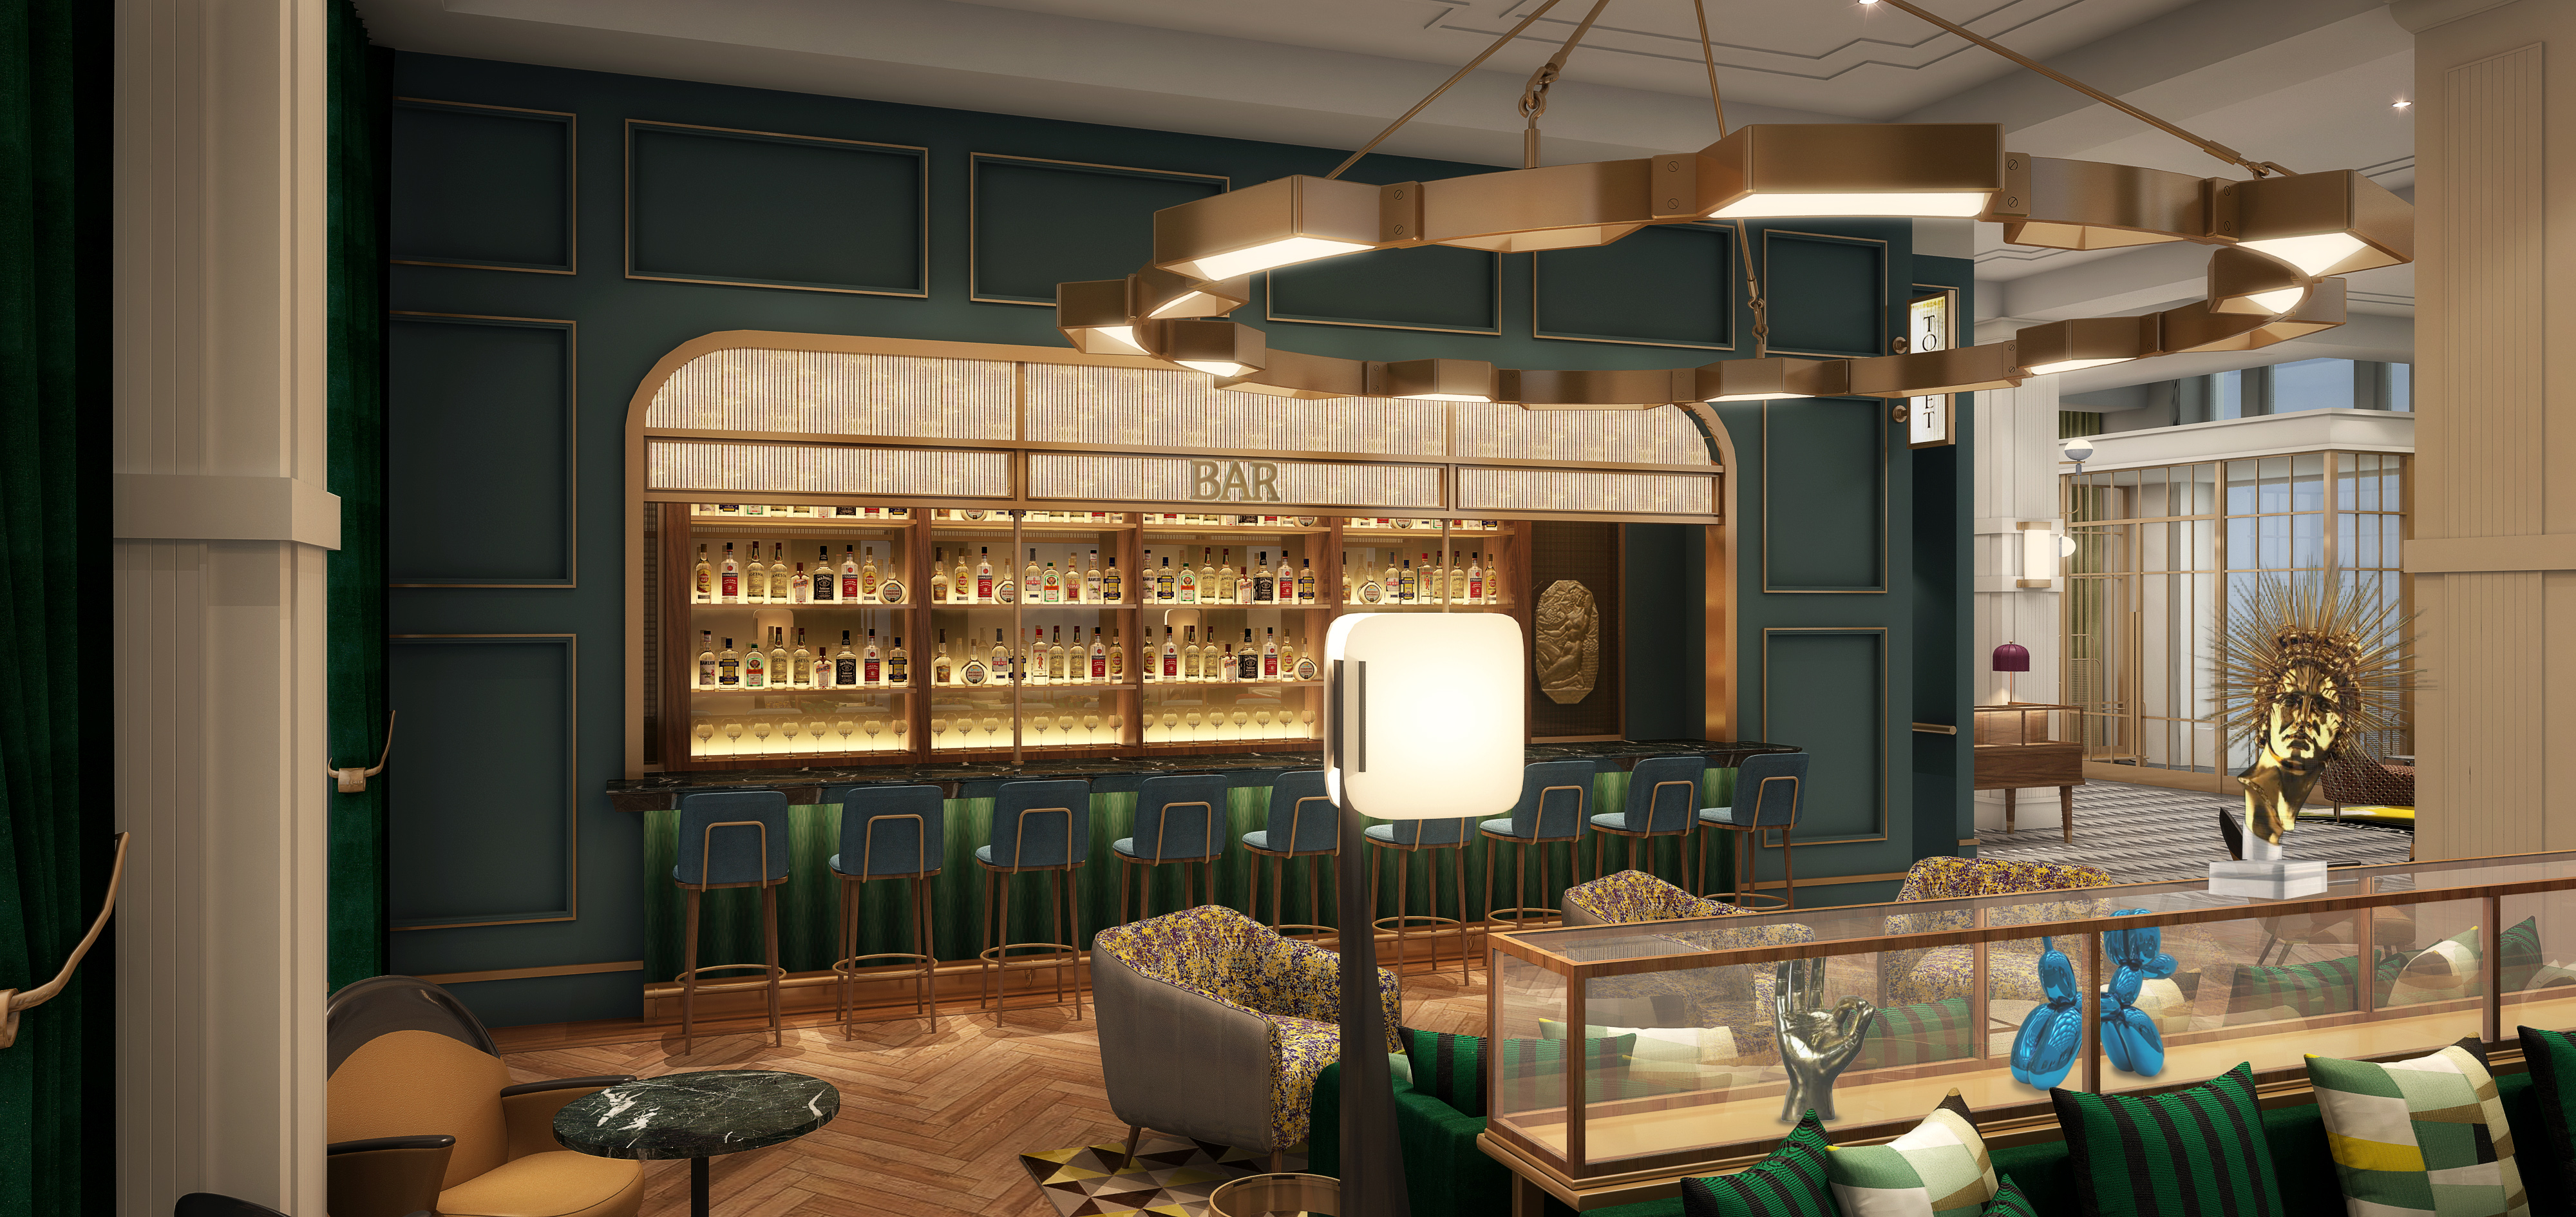 interior of restaurant with green and gold decor and a bar